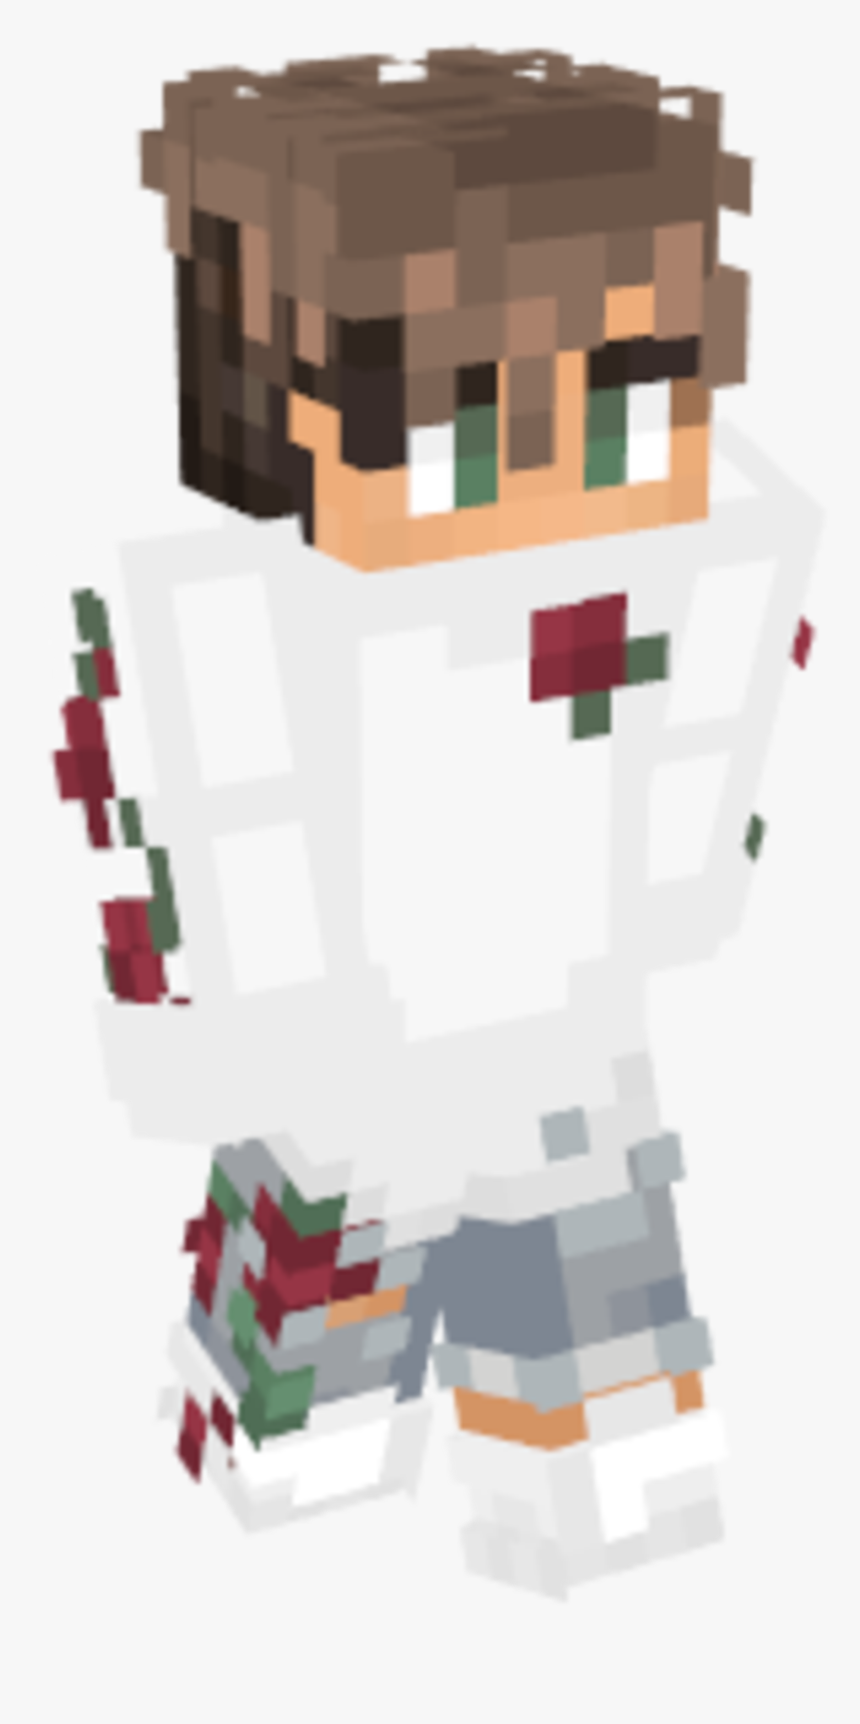 Trendy Boy Minecraft Skins Hd Png Download Transparent Png Image Pngitem